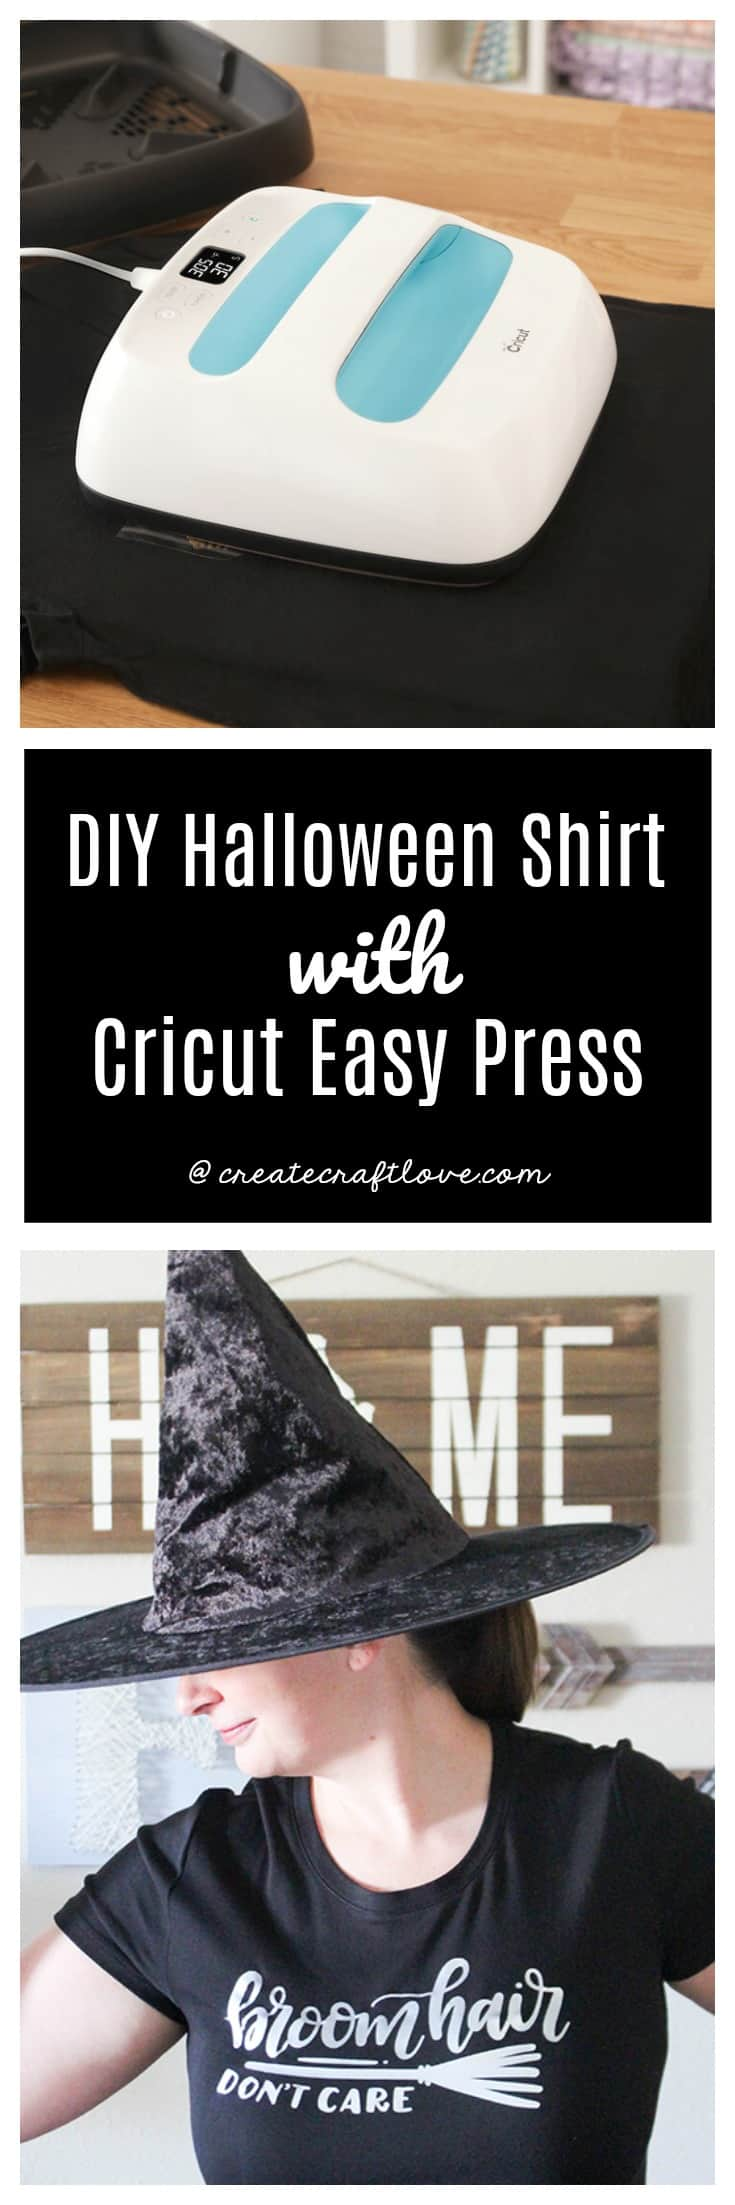 Creating your own Halloween Shirt has never been easier with Cricut Easy Press!